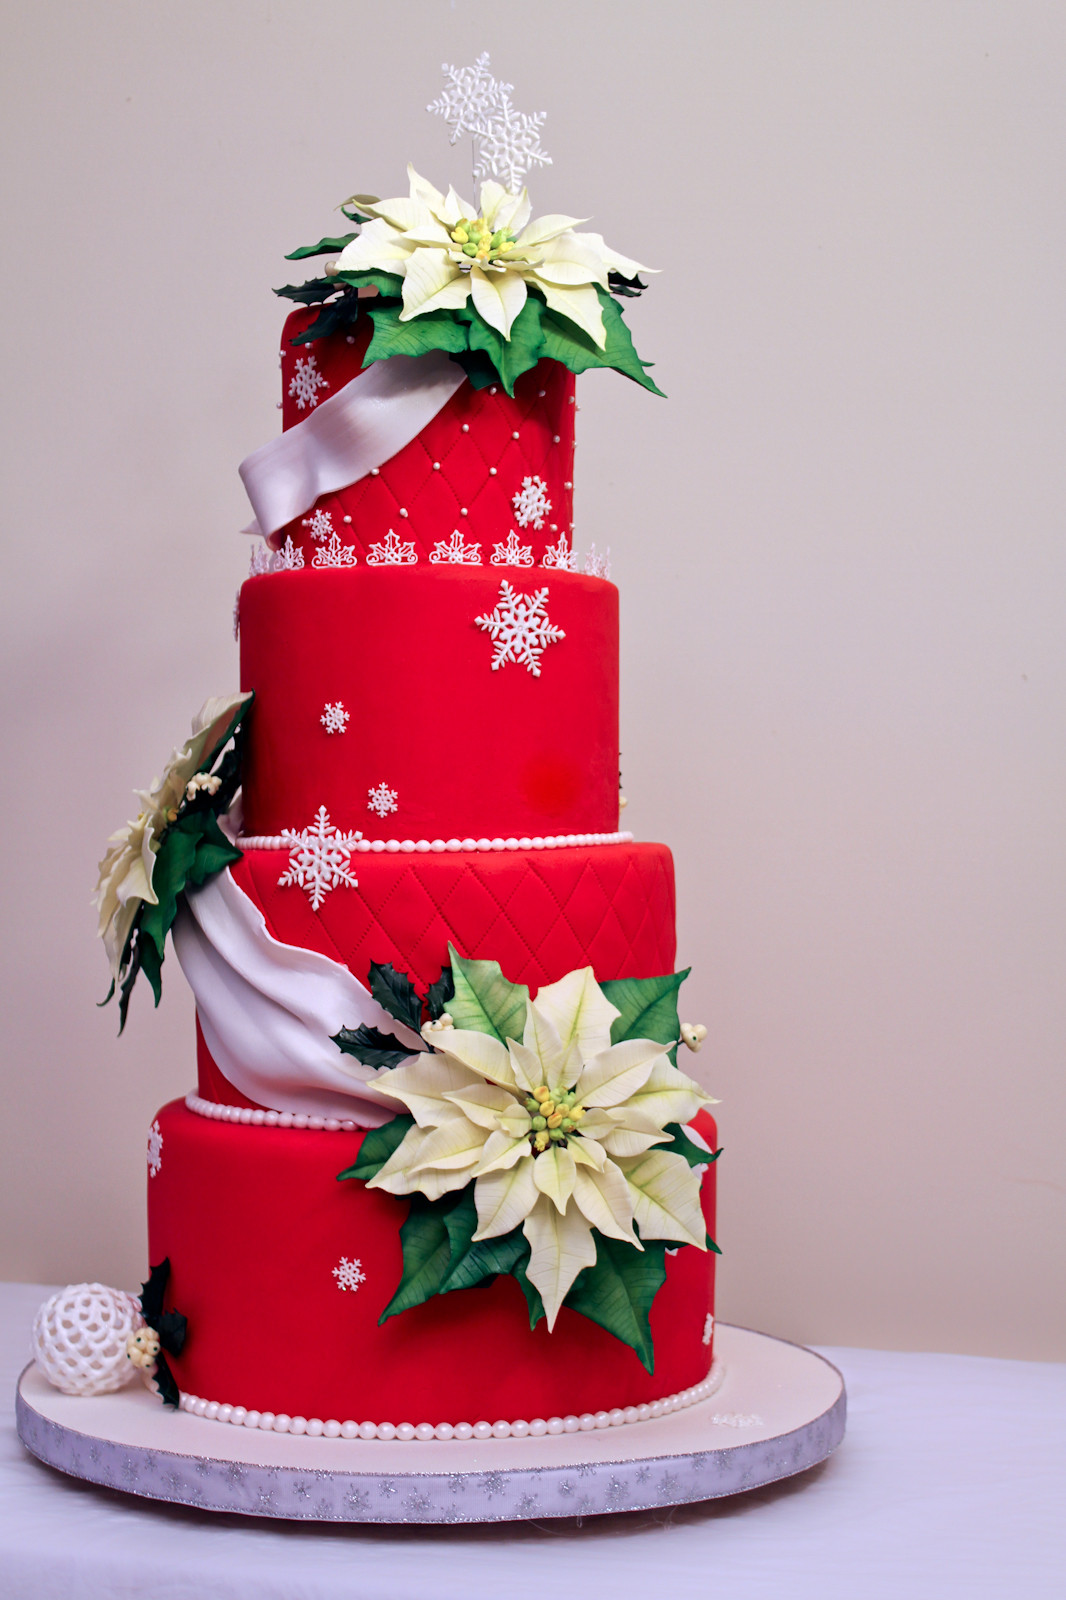 Christmas Cakes Images  The Cake Engineer Holiday Poinsettia Cake